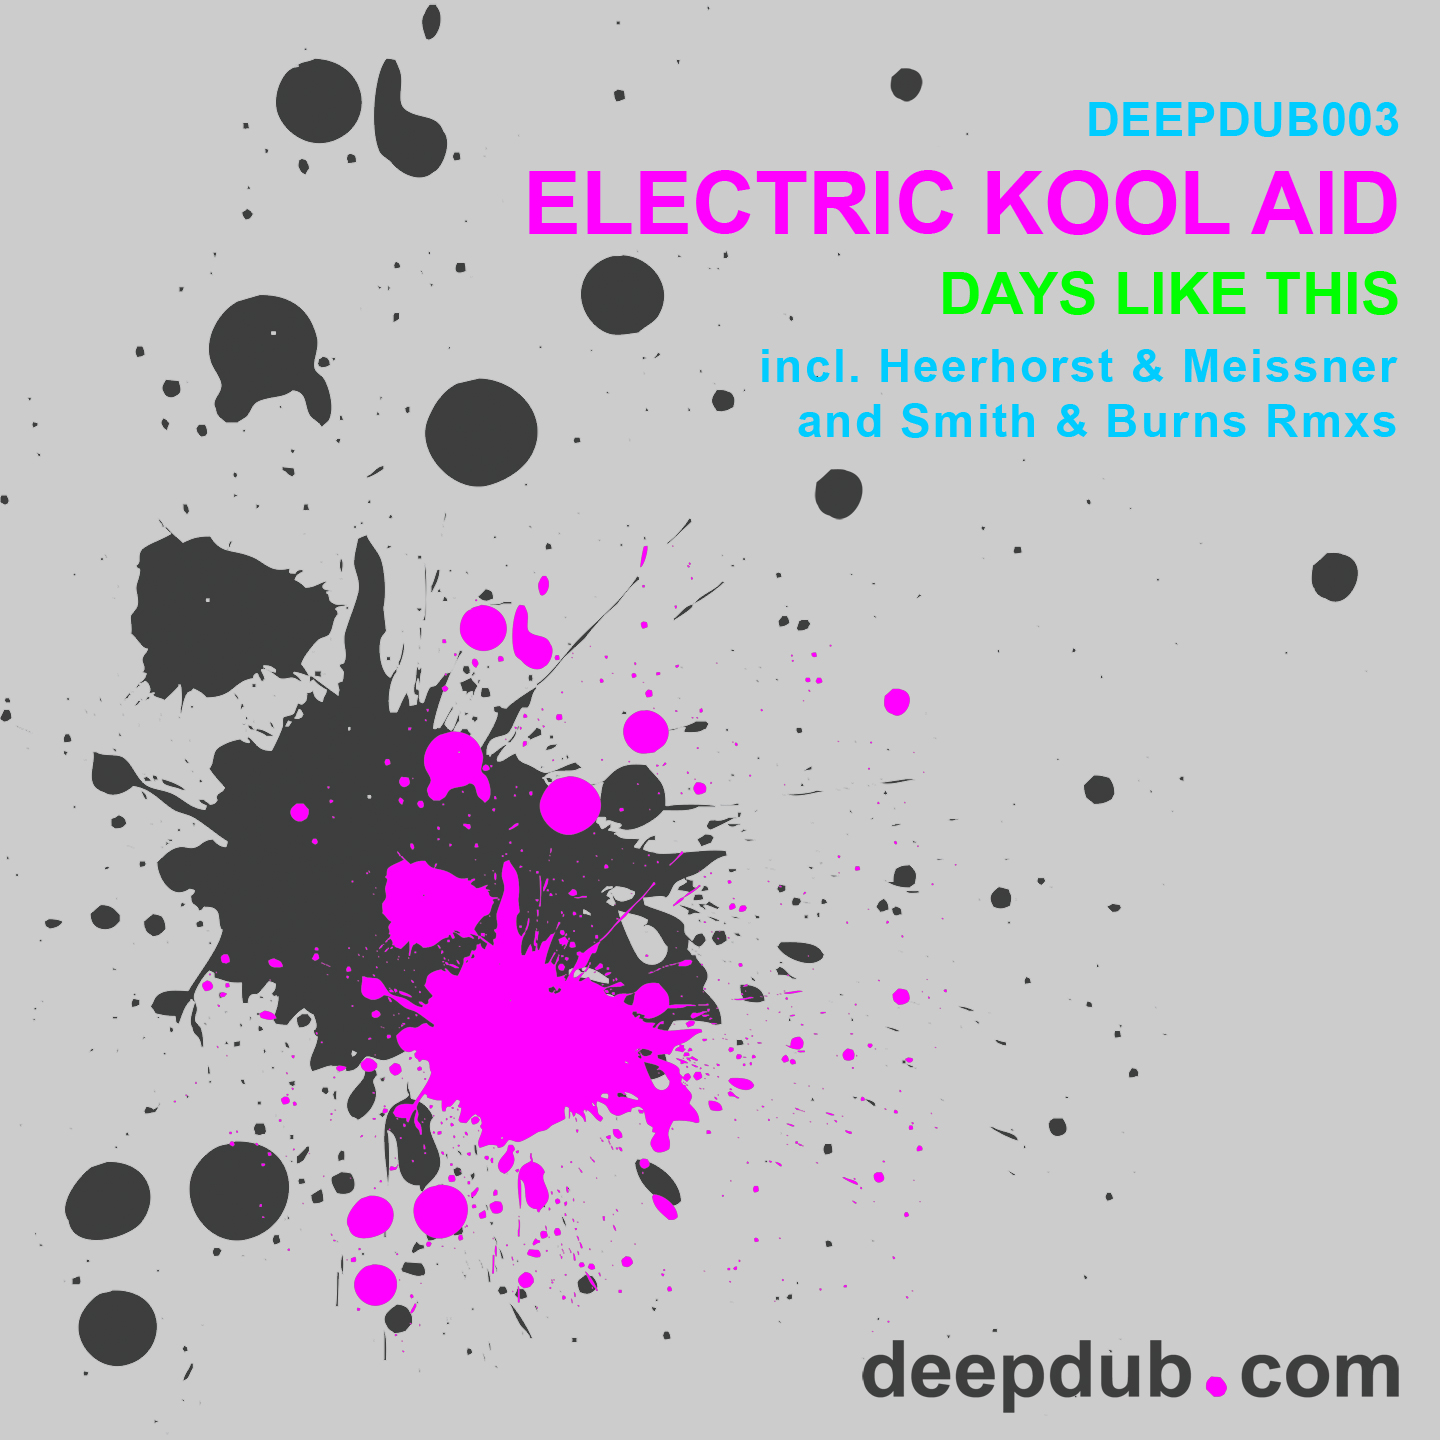 deepdub003 - Electric Kool Aid - Days Like This